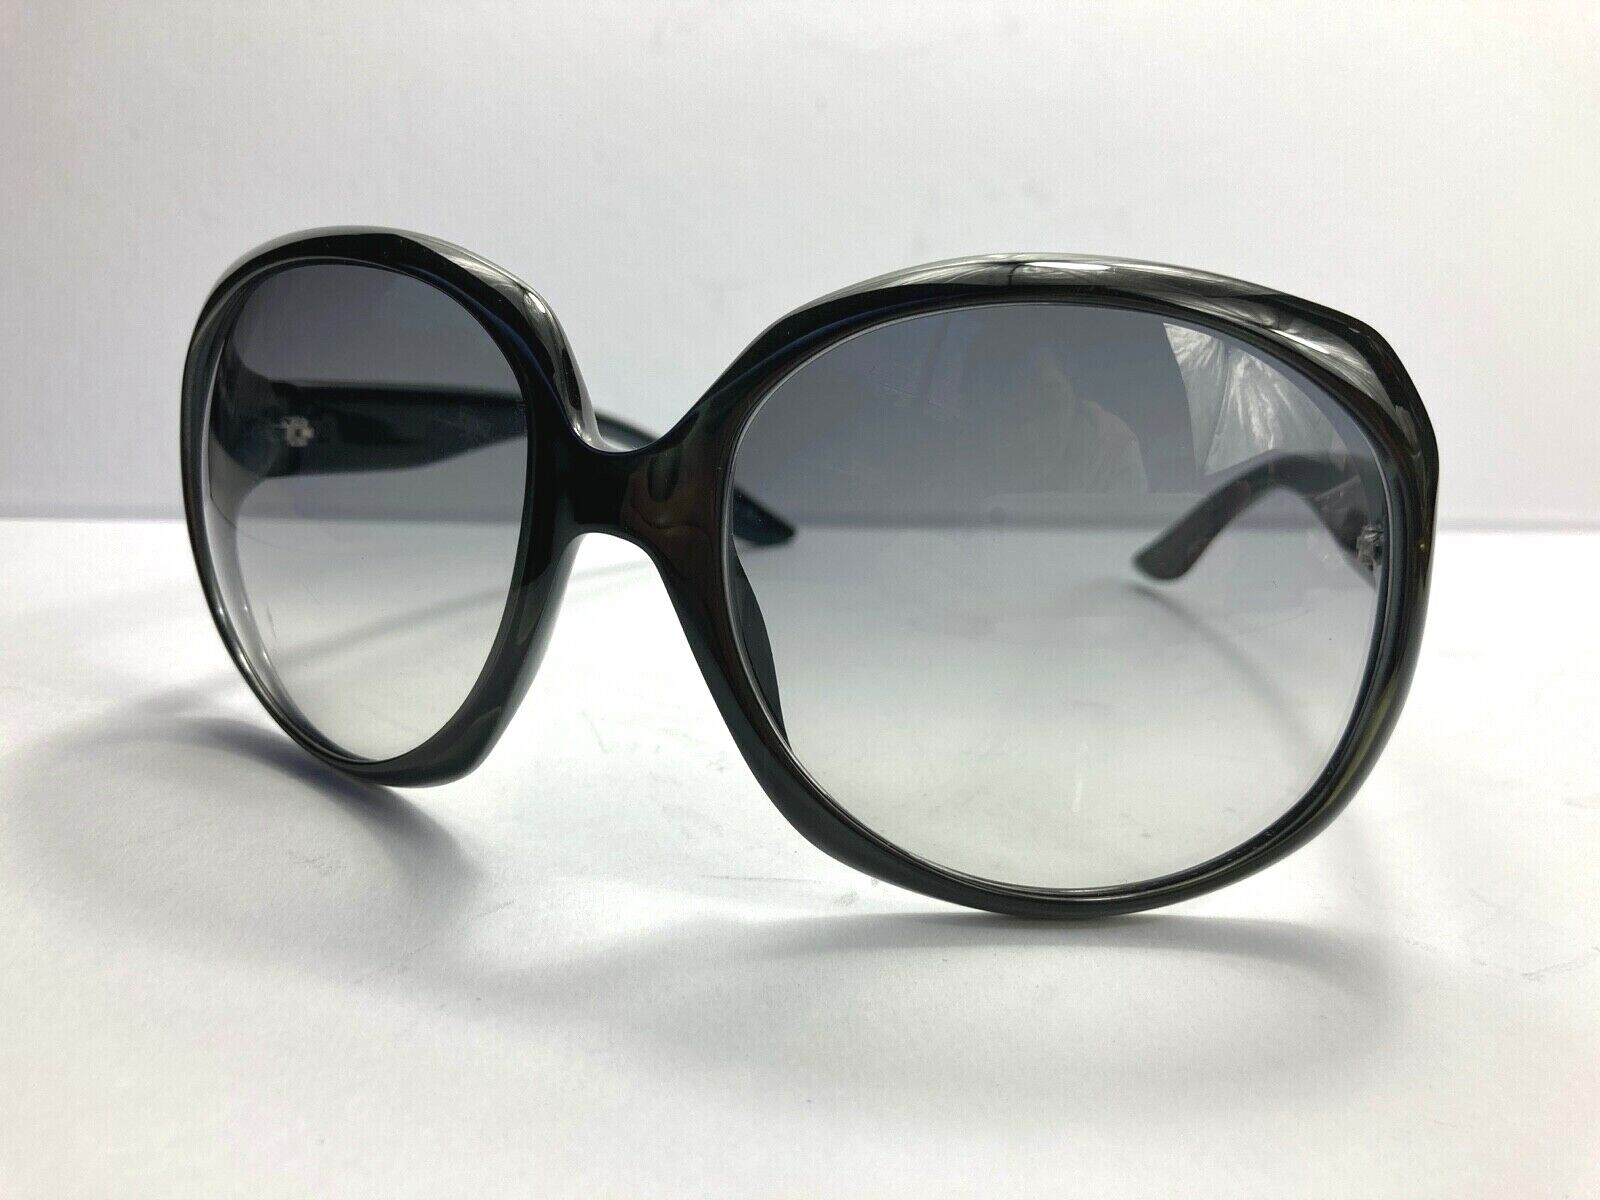 CHRISTIAN DIOR GLOSSY ICONIC SUNGLASSES OVERSIZED GRADATION CLEAR GRAY ITALY